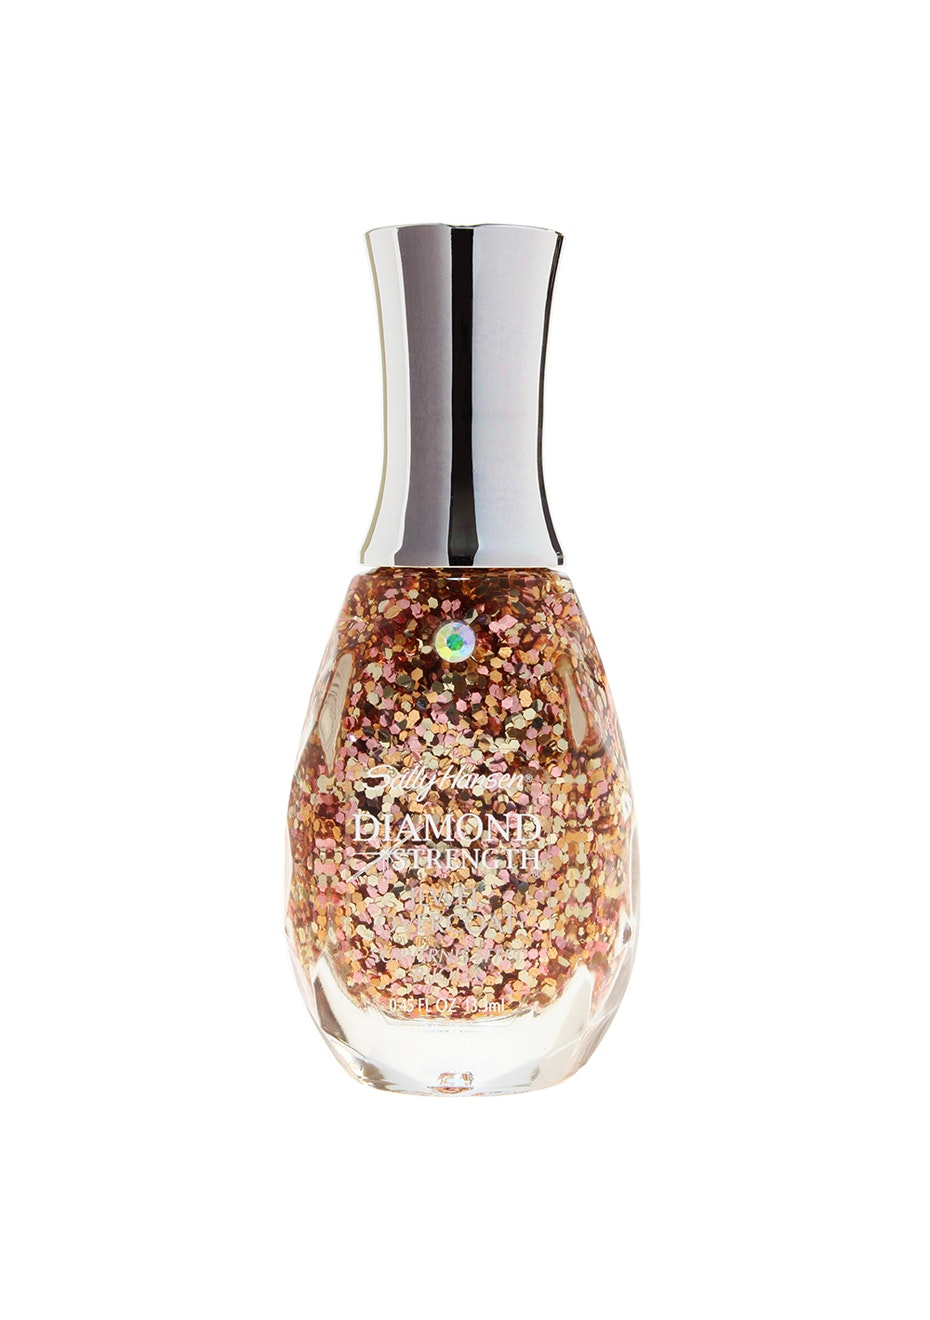 Sally Hansen Diamond Strength Nail Color #501 RING-A-DING!